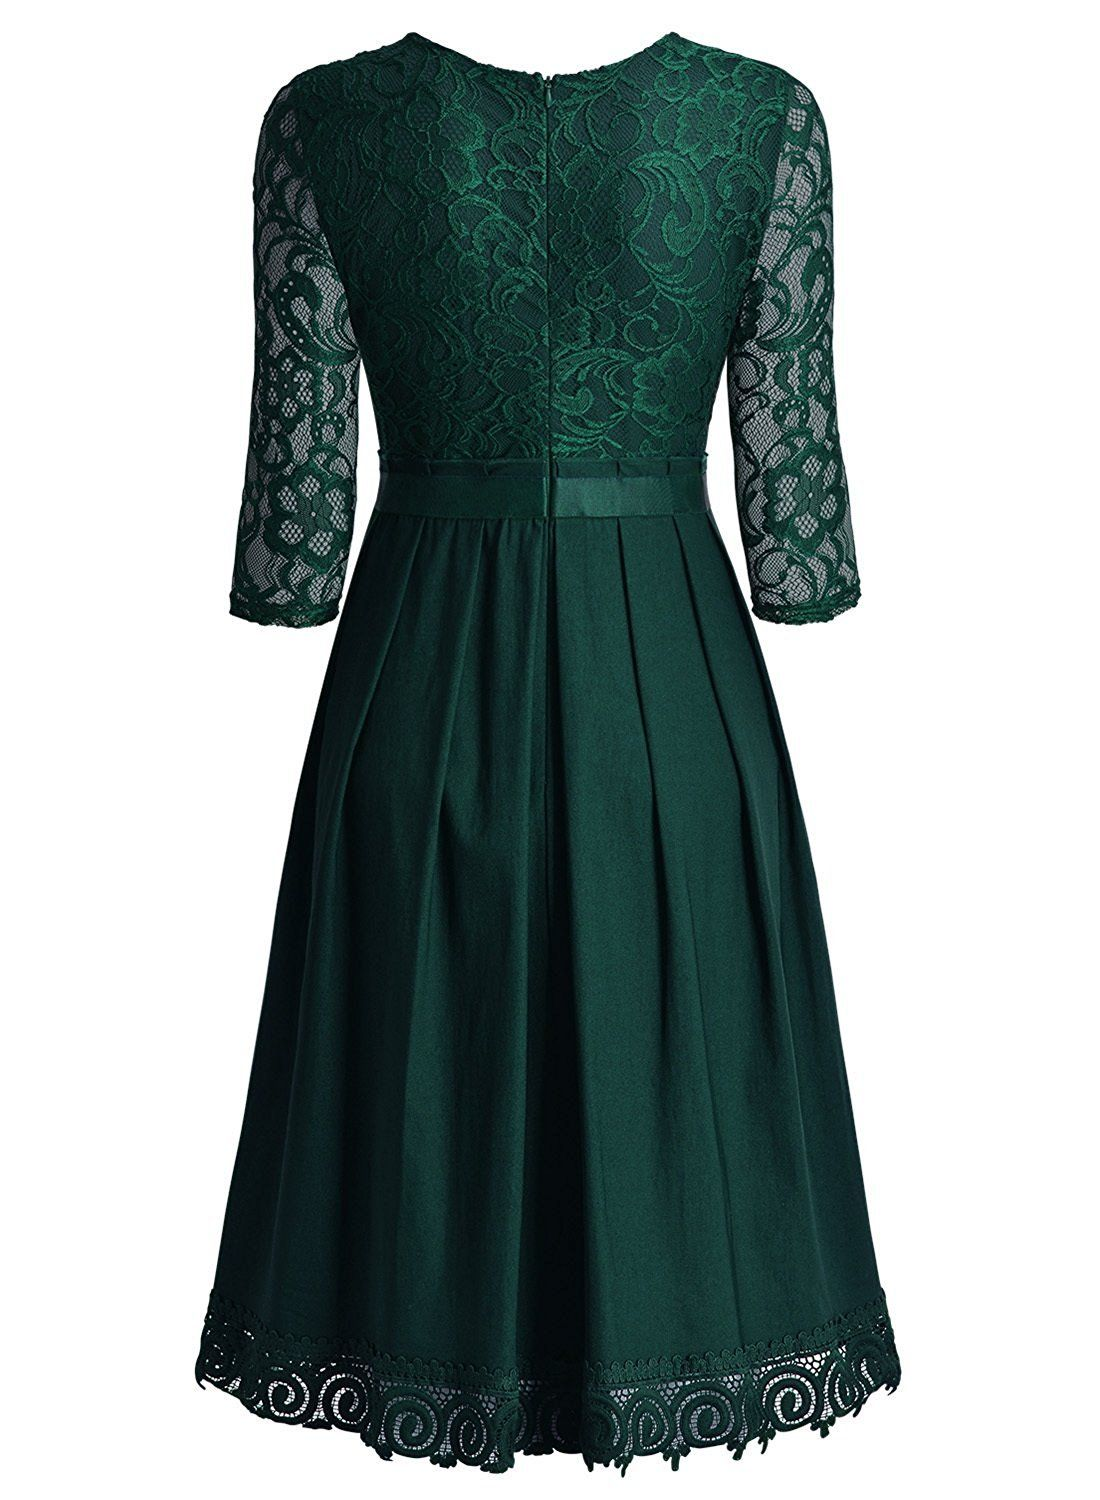 c841c65a8dab This simply elegant short dress features a 3/4 sleeve round neckline.  A-line retro style perfect for casual or any special occasion.